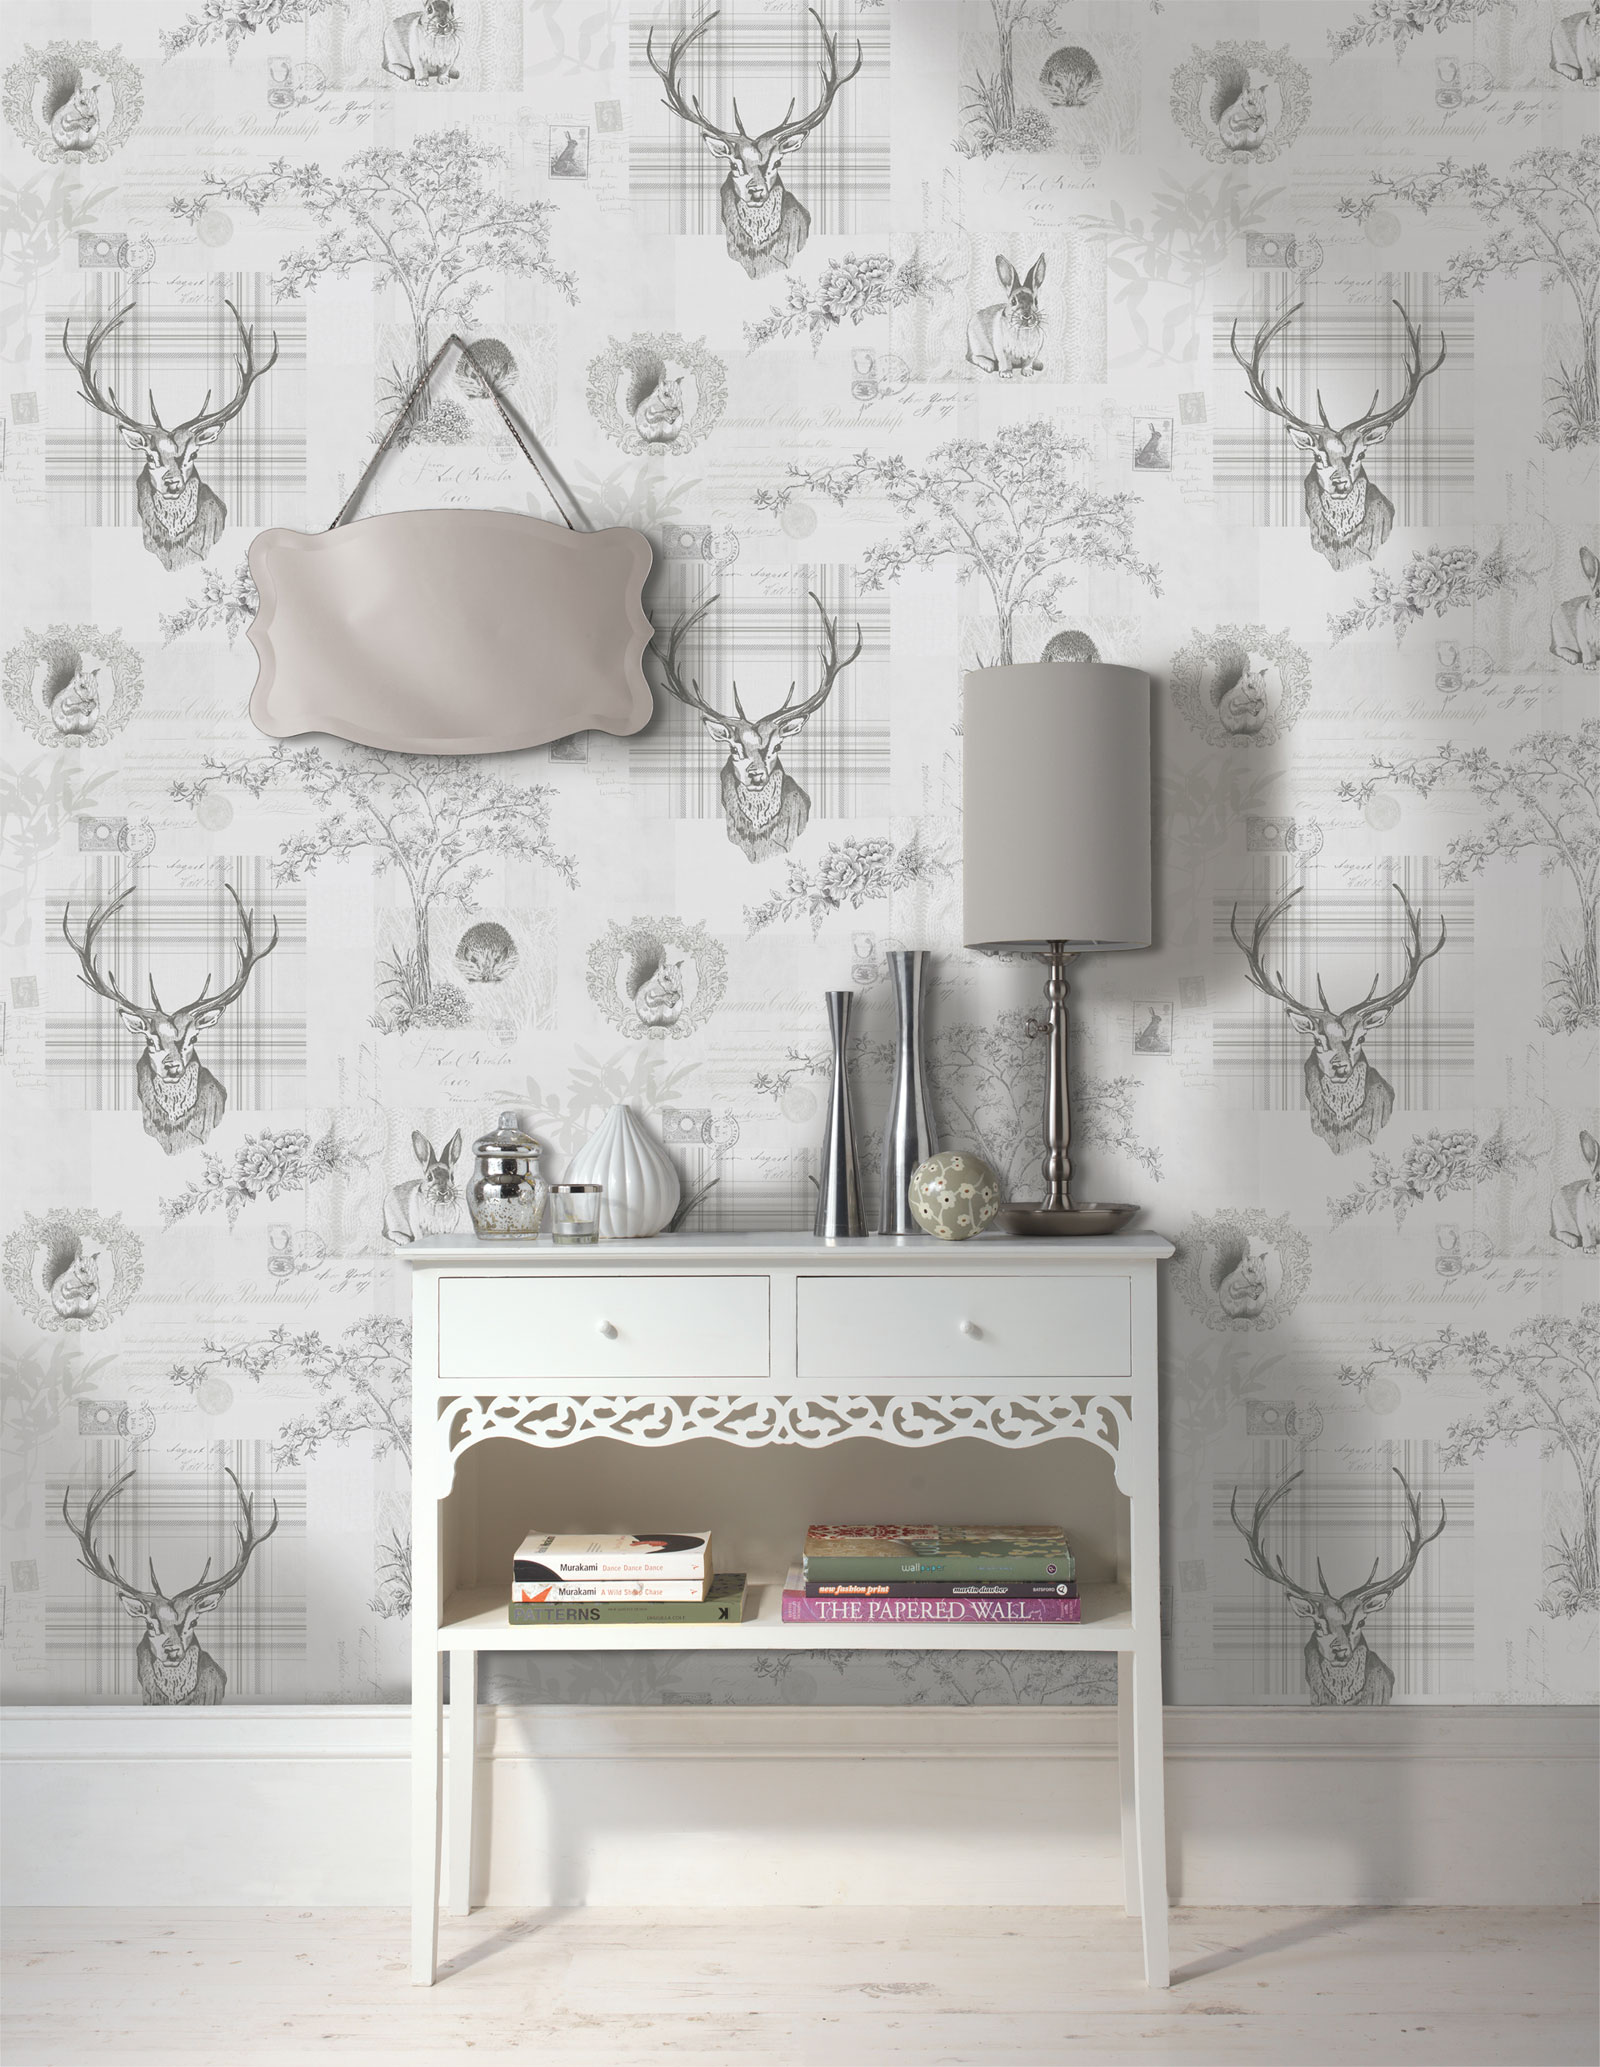 Details about Animal Print Wallpaper Woodland Stag Rabbit Trees Flowers Grey Charcoal